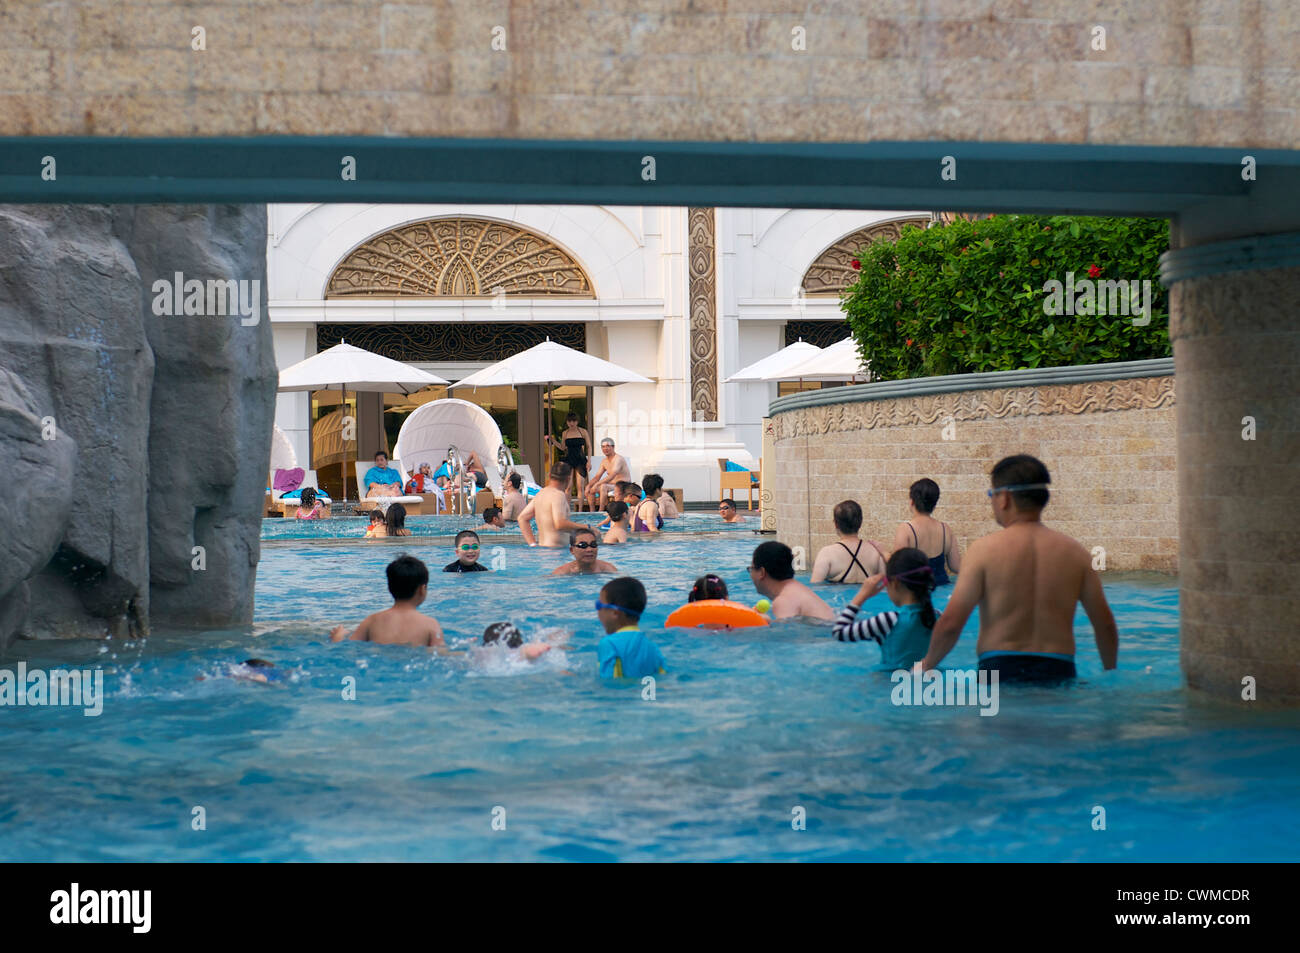 Wave Pool In The Galaxy Hotel In Macau Stock Photo 50235971 Alamy